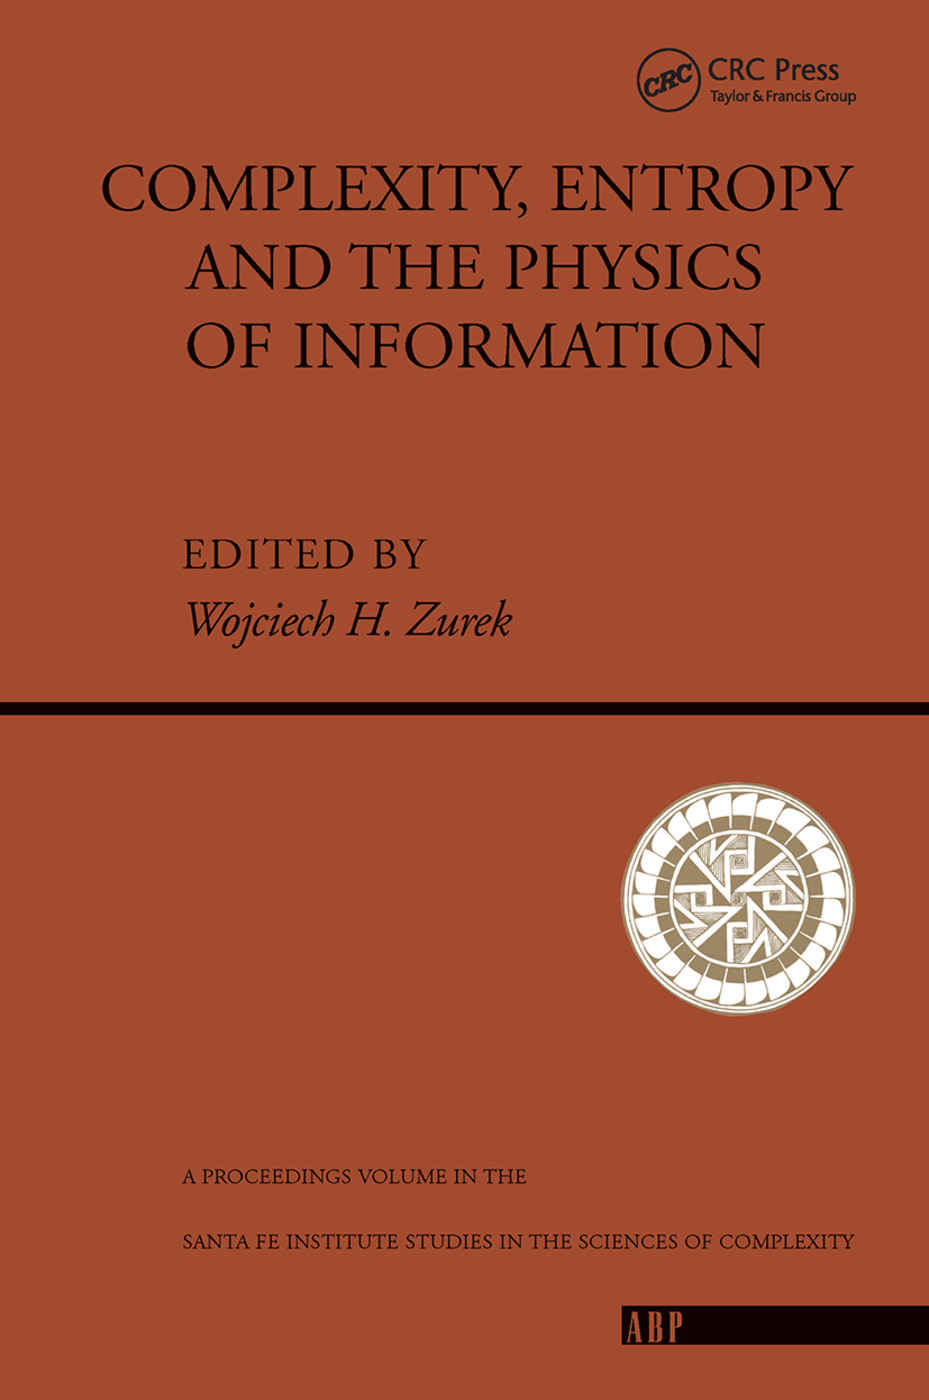 Complexity, Entropy And The Physics Of Information book cover